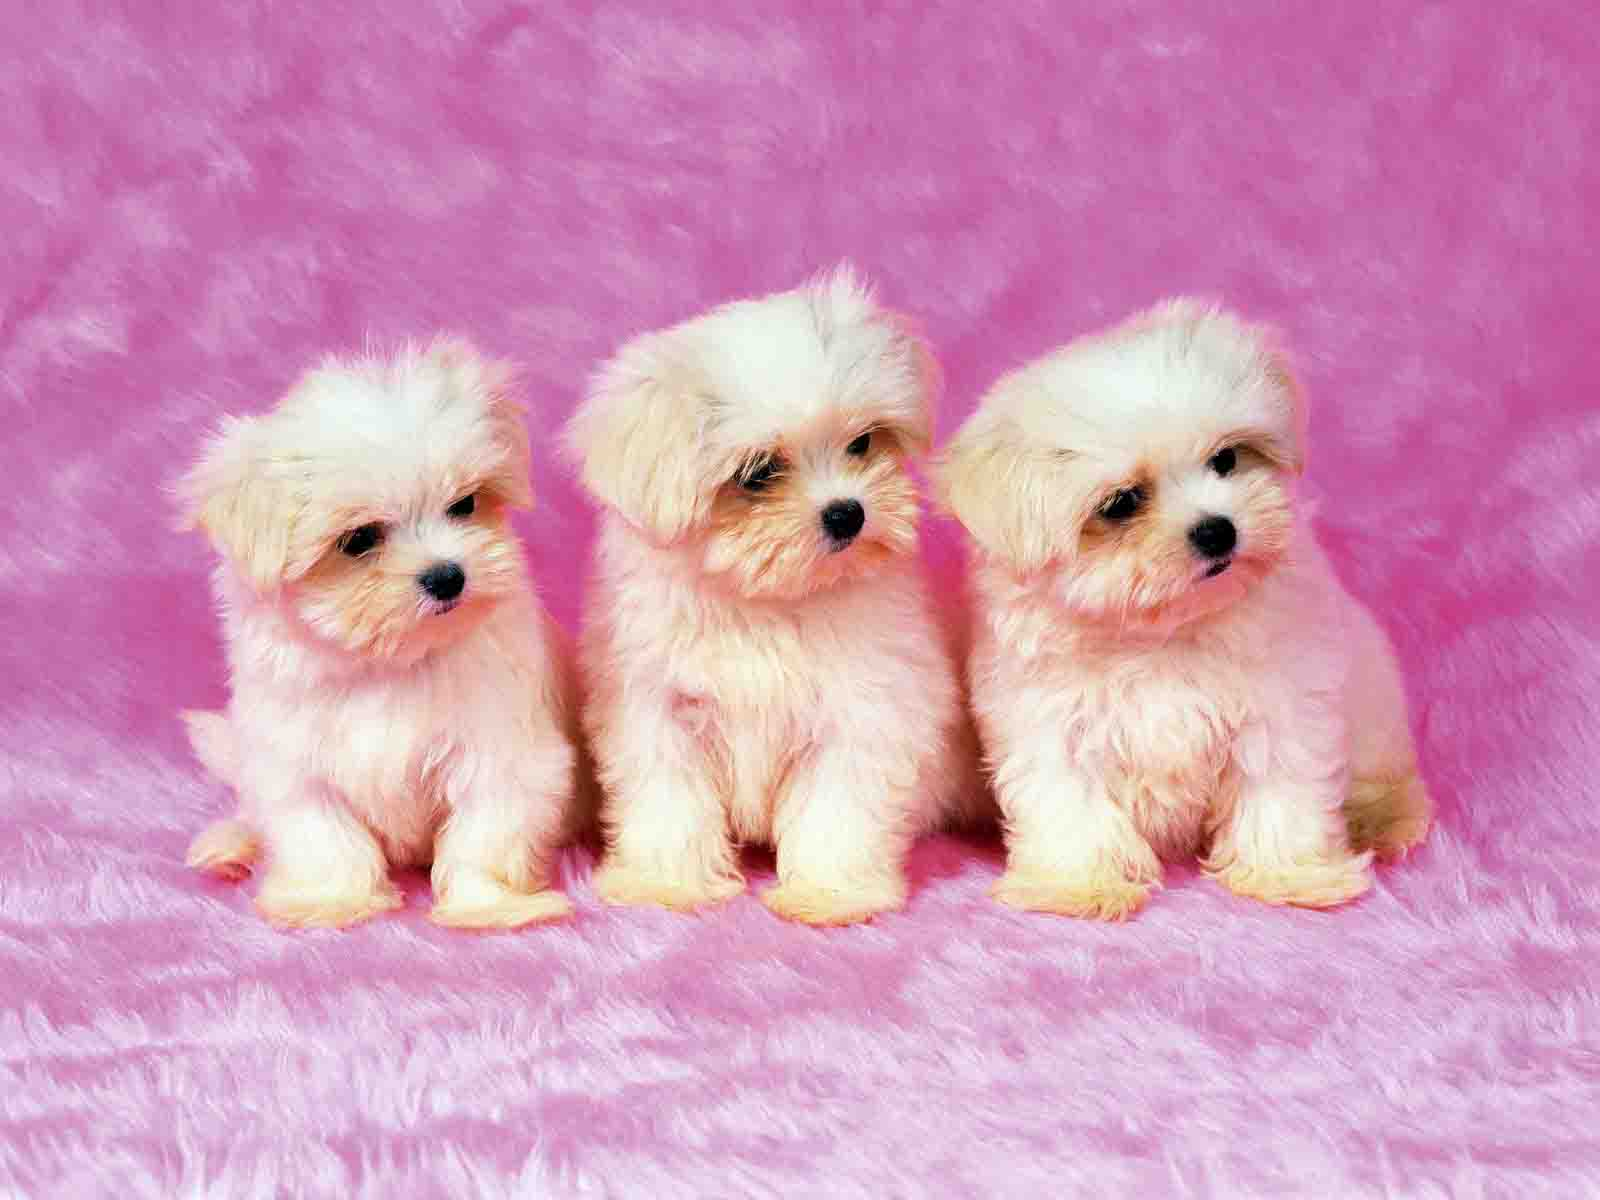 actress movie popular: CUTE PUPPY HD WALLPAPERS